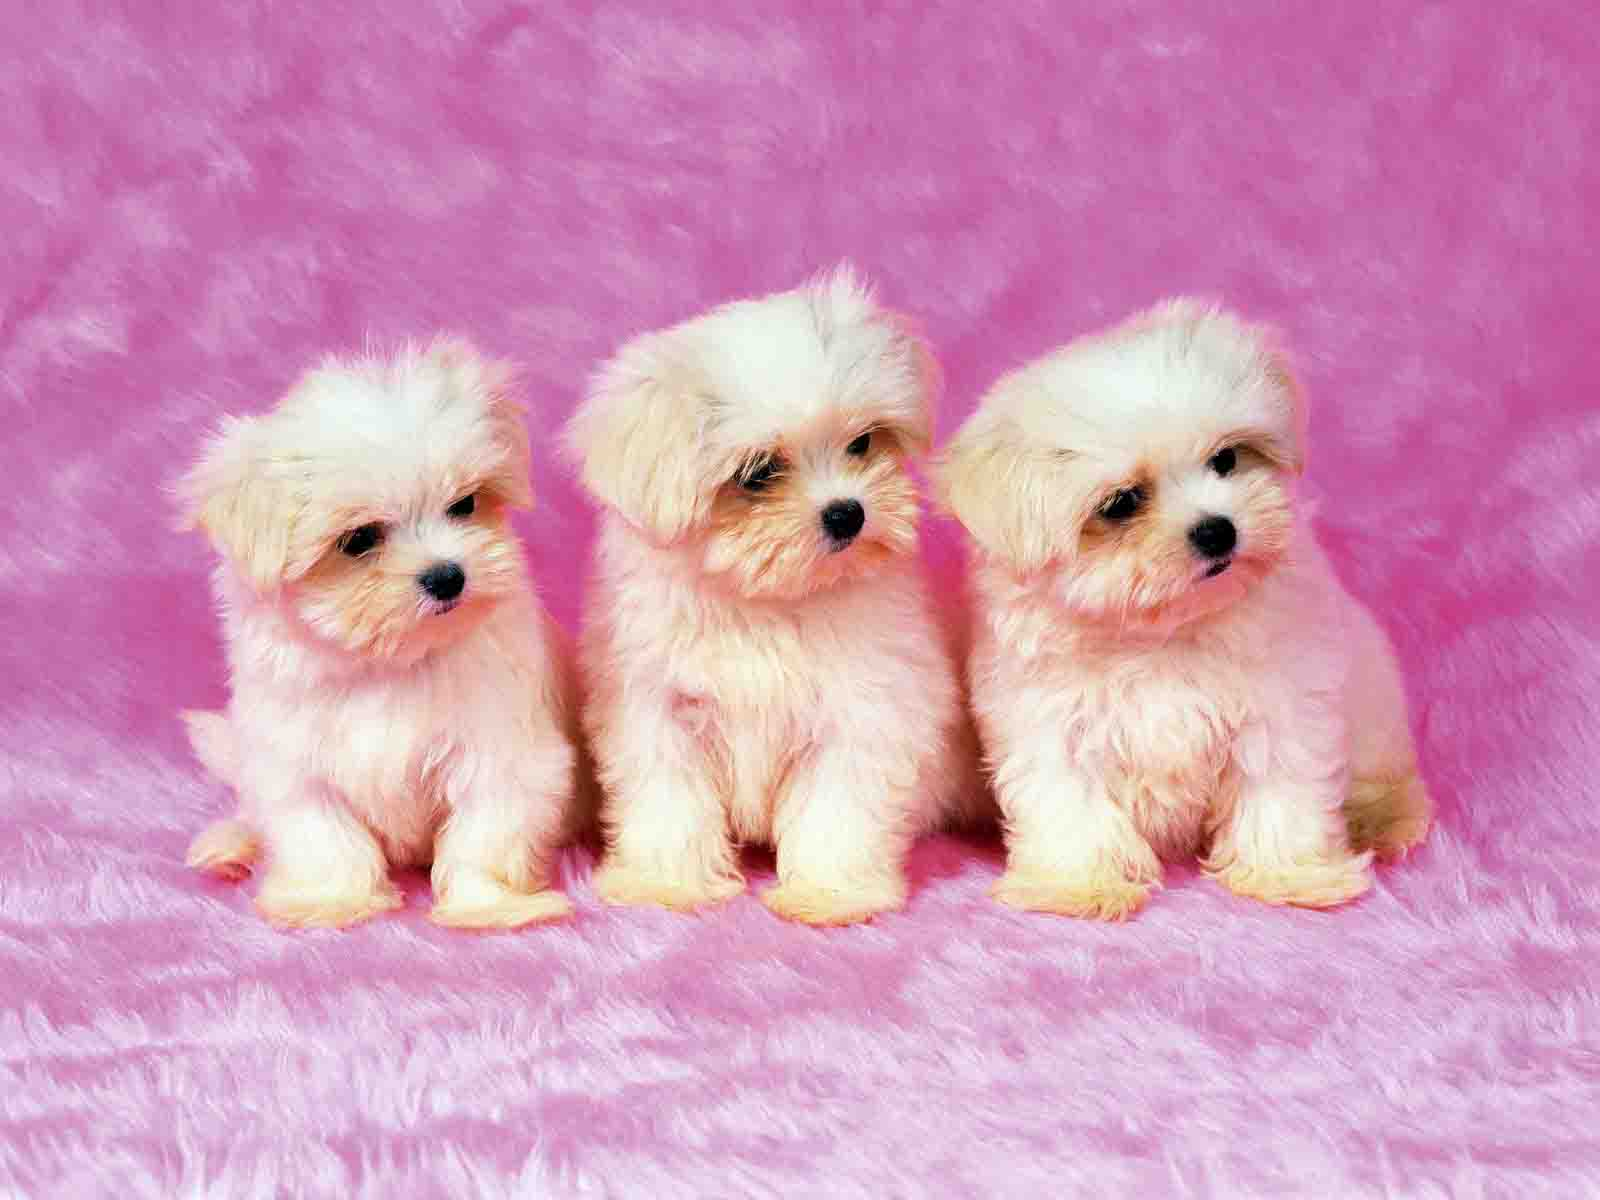 actress movie popular: CUTE PUPPY HD WALLPAPERS